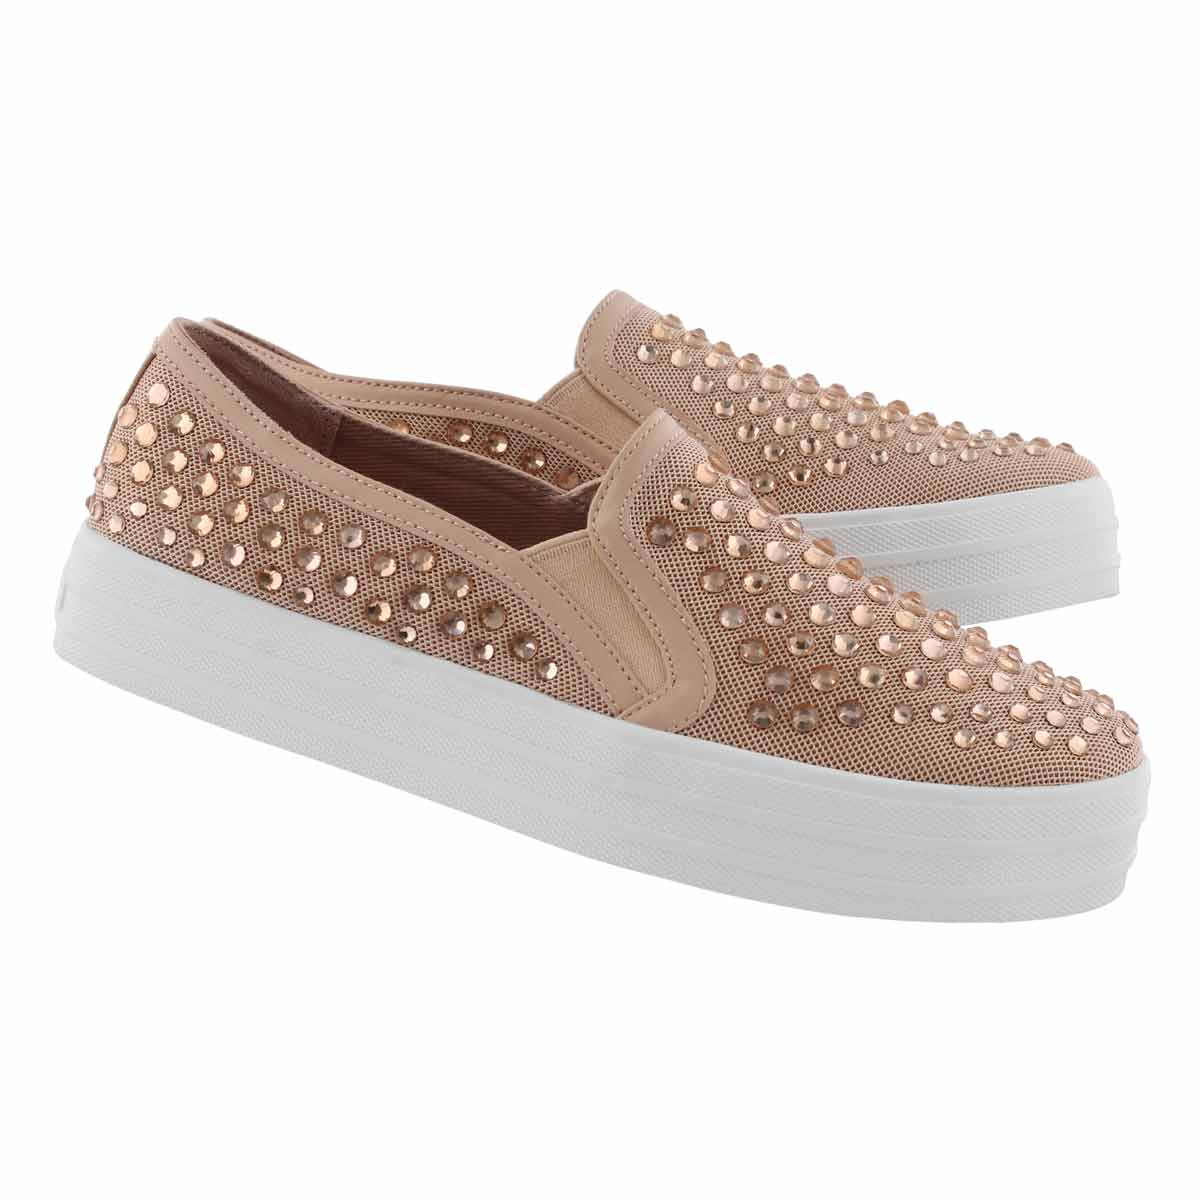 Lds Double Up Rhine-Steps pink slip on